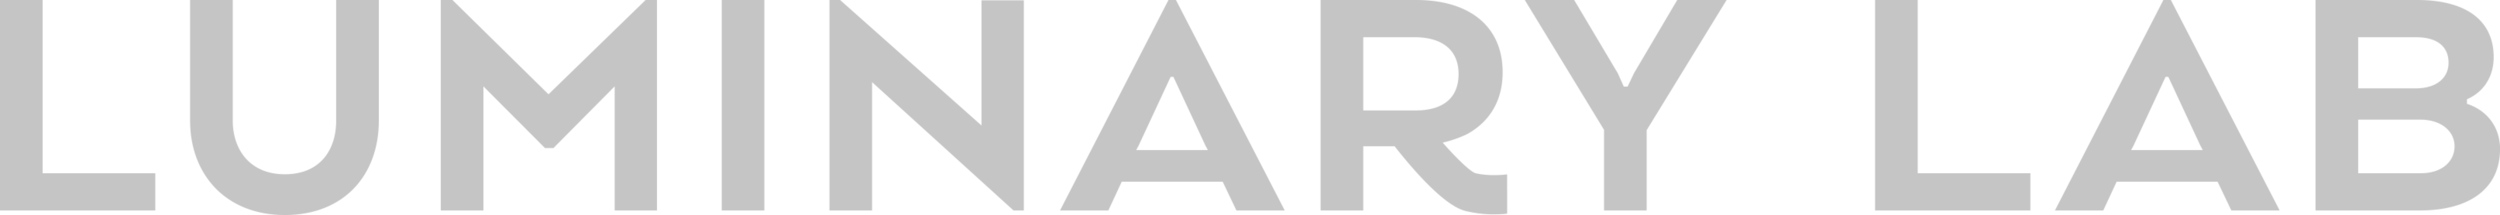 LL_wordmark_lightgray.png